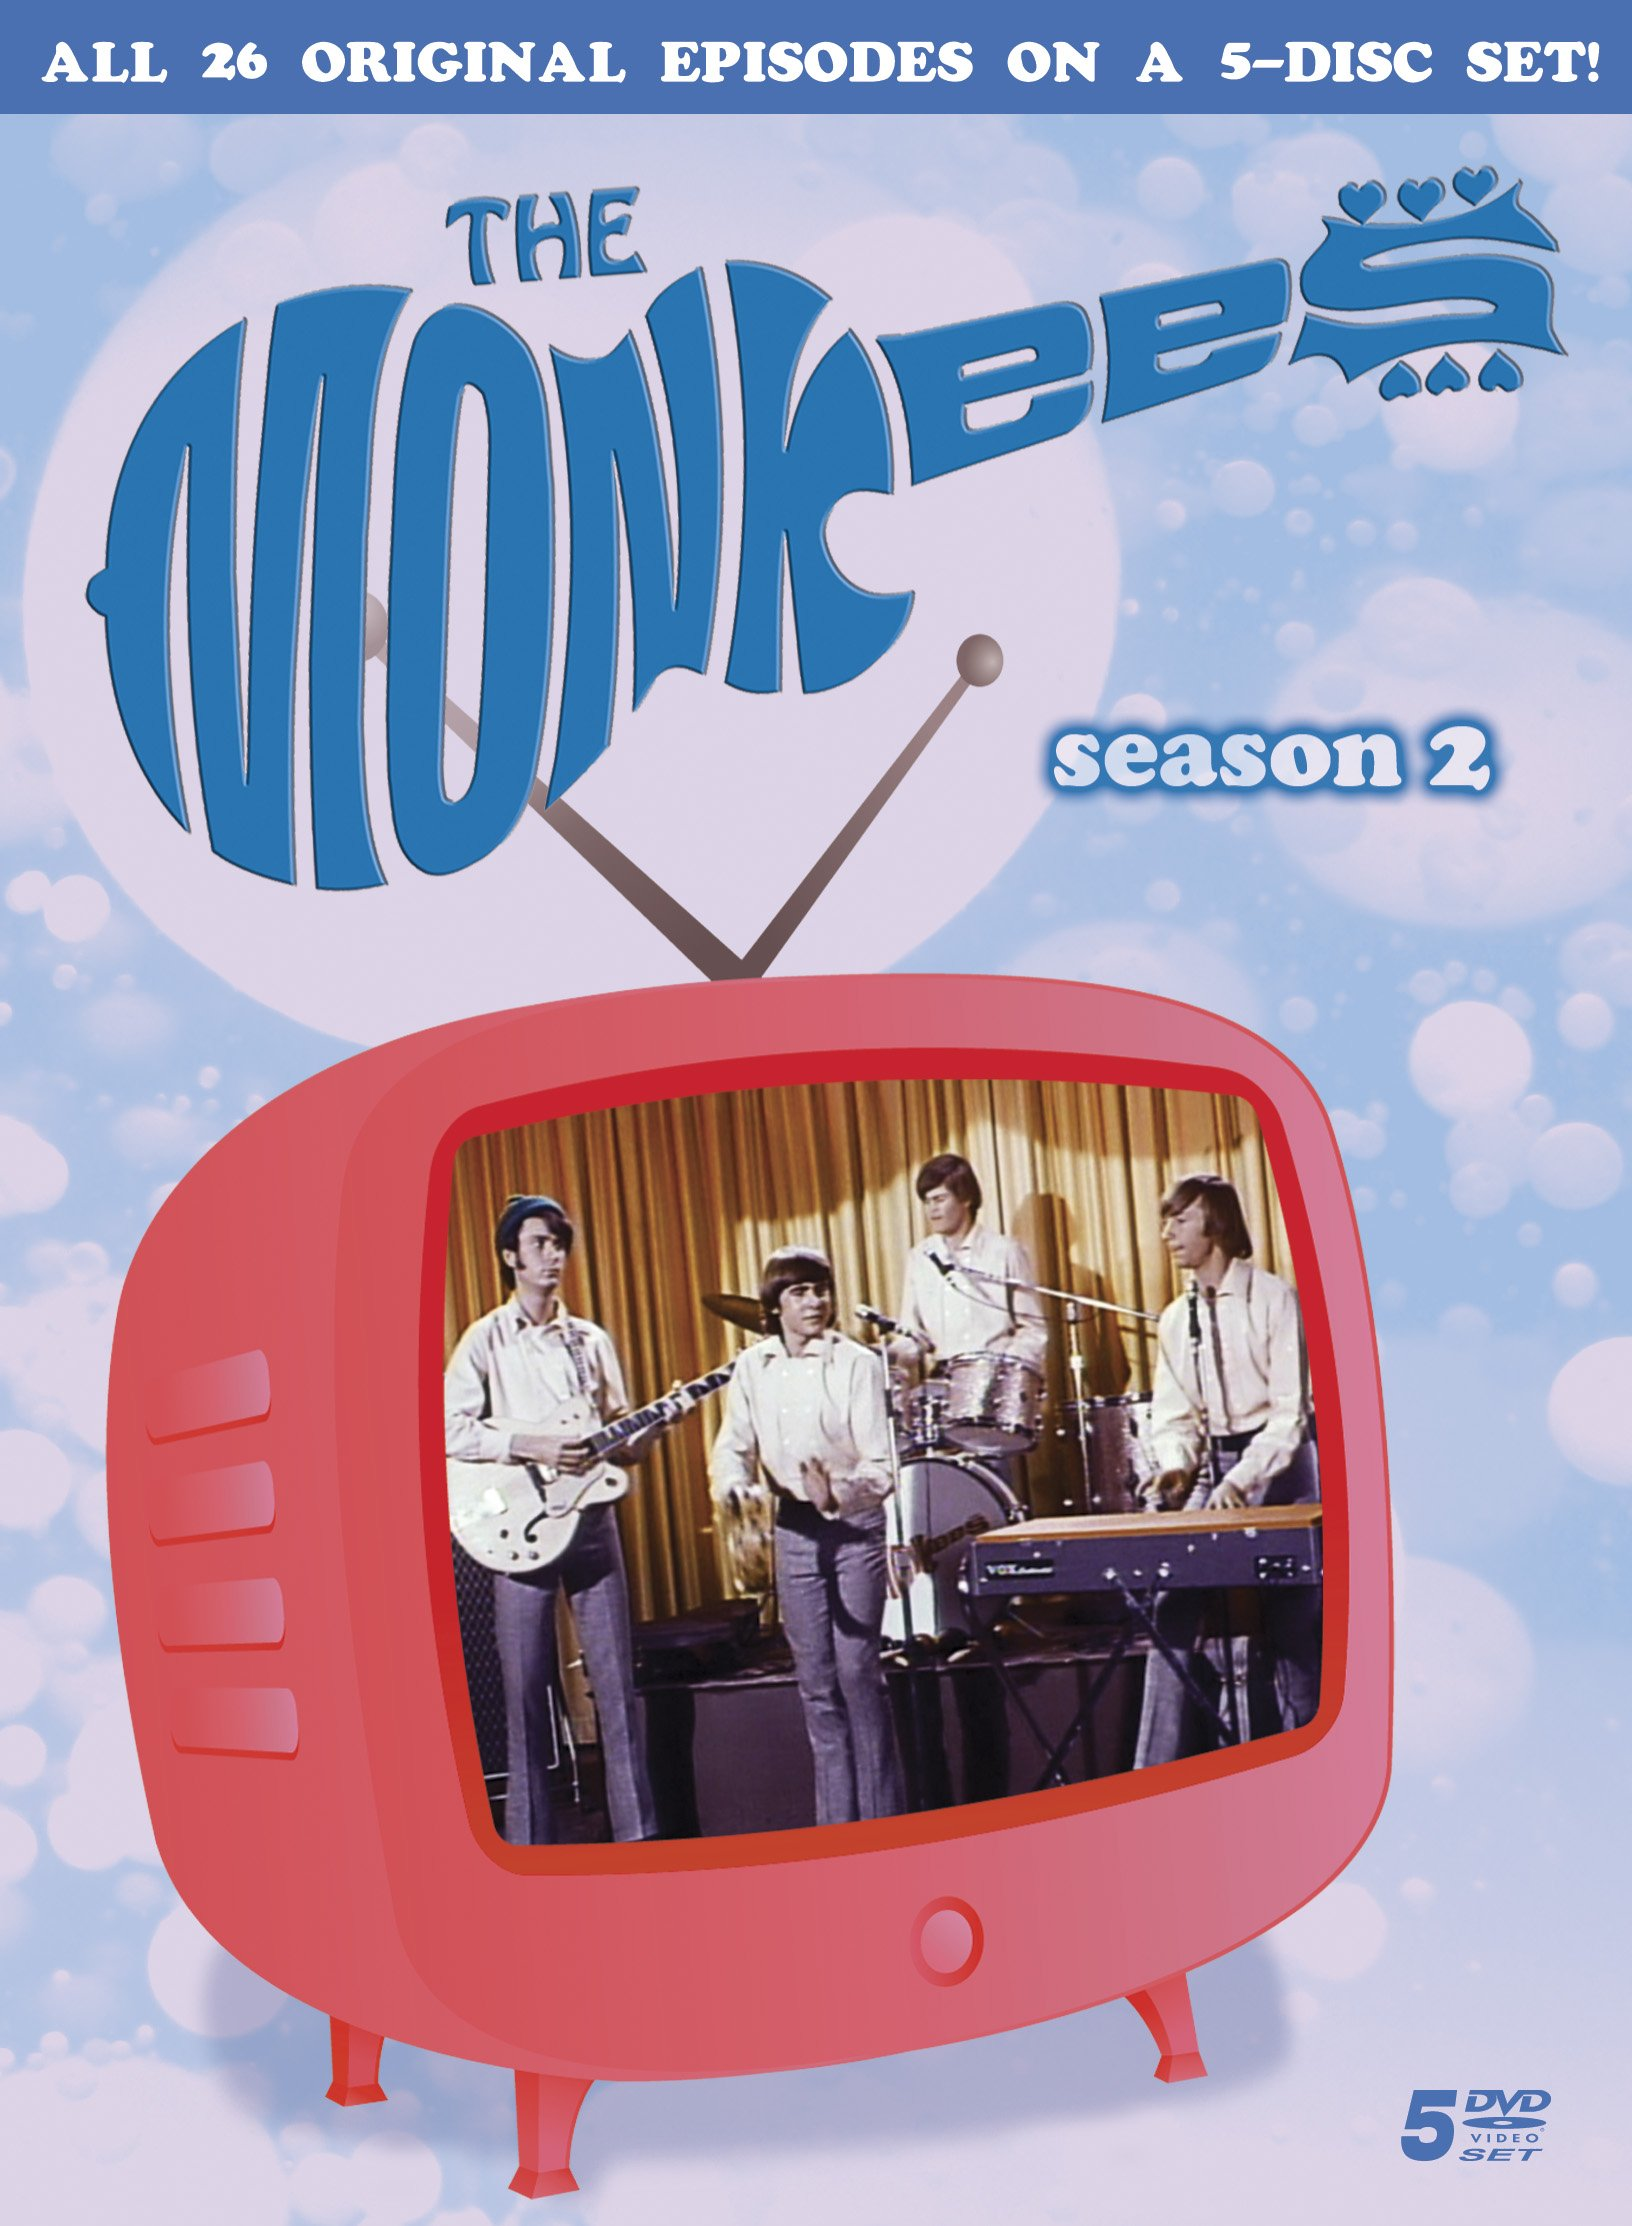 DVD : Arlene Martel - The Monkees: Season 2 (5 Disc)